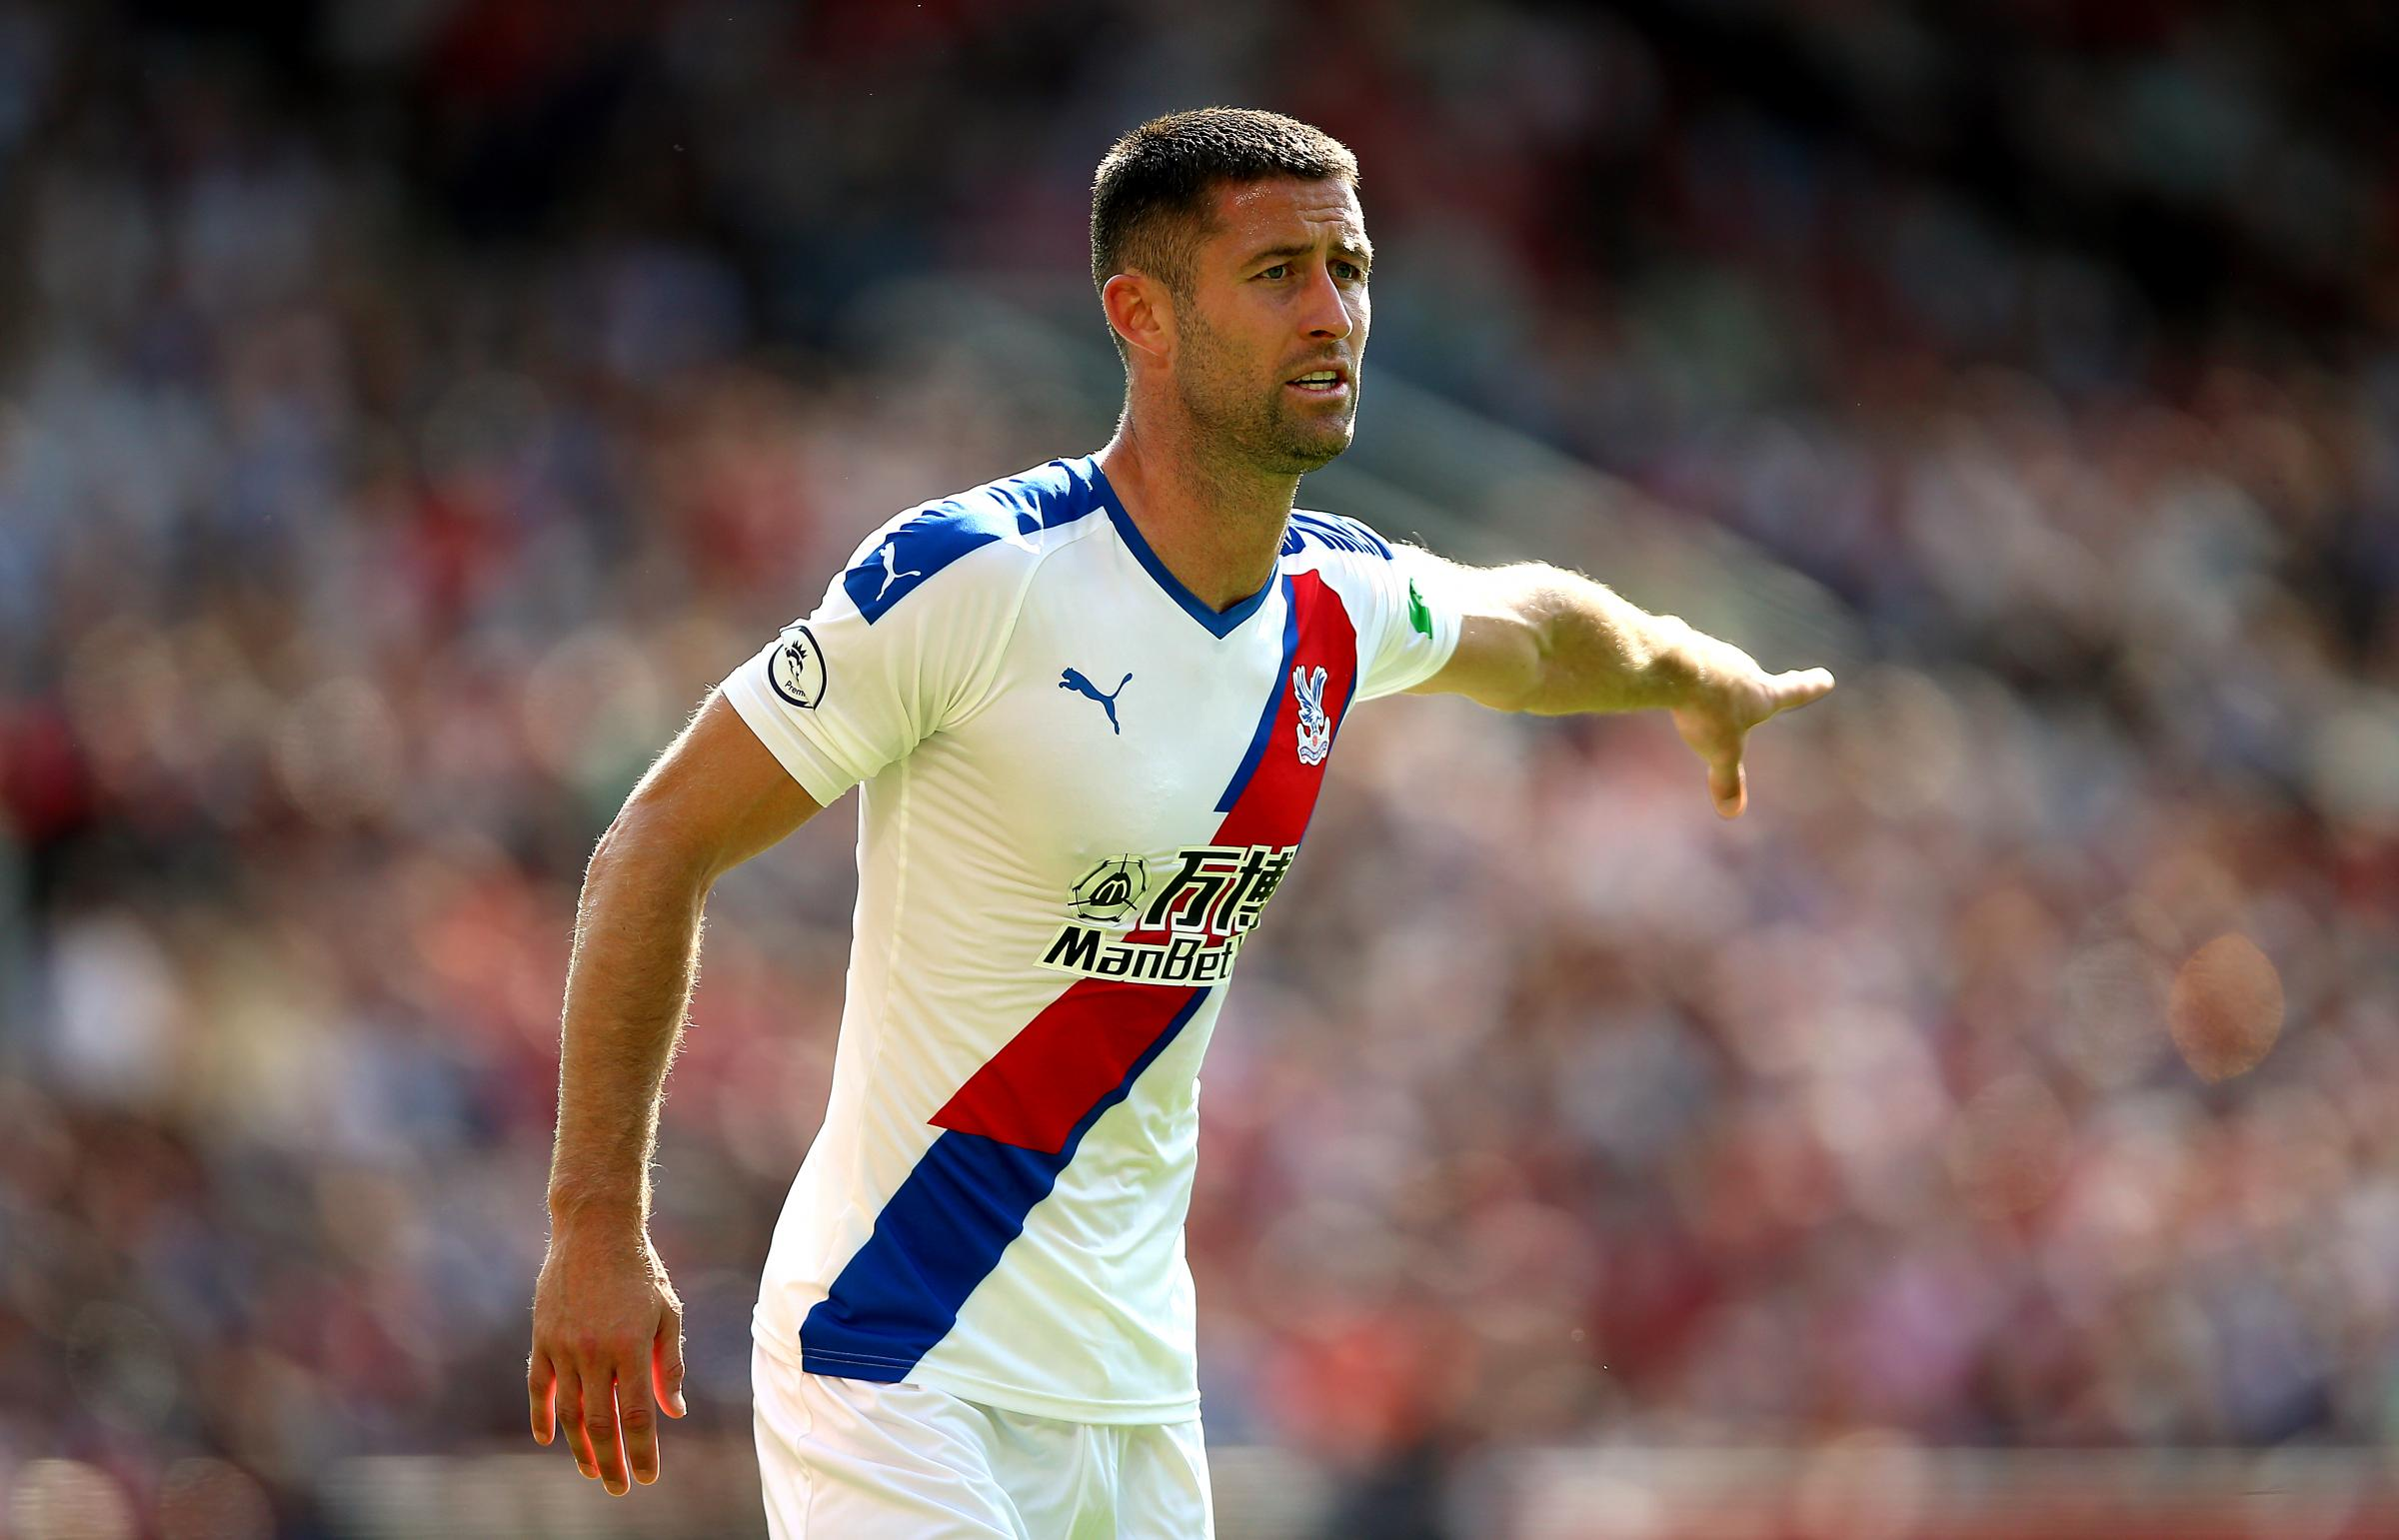 Gary Cahill on Crystal Palace's defeat to Tottenham Hotspur